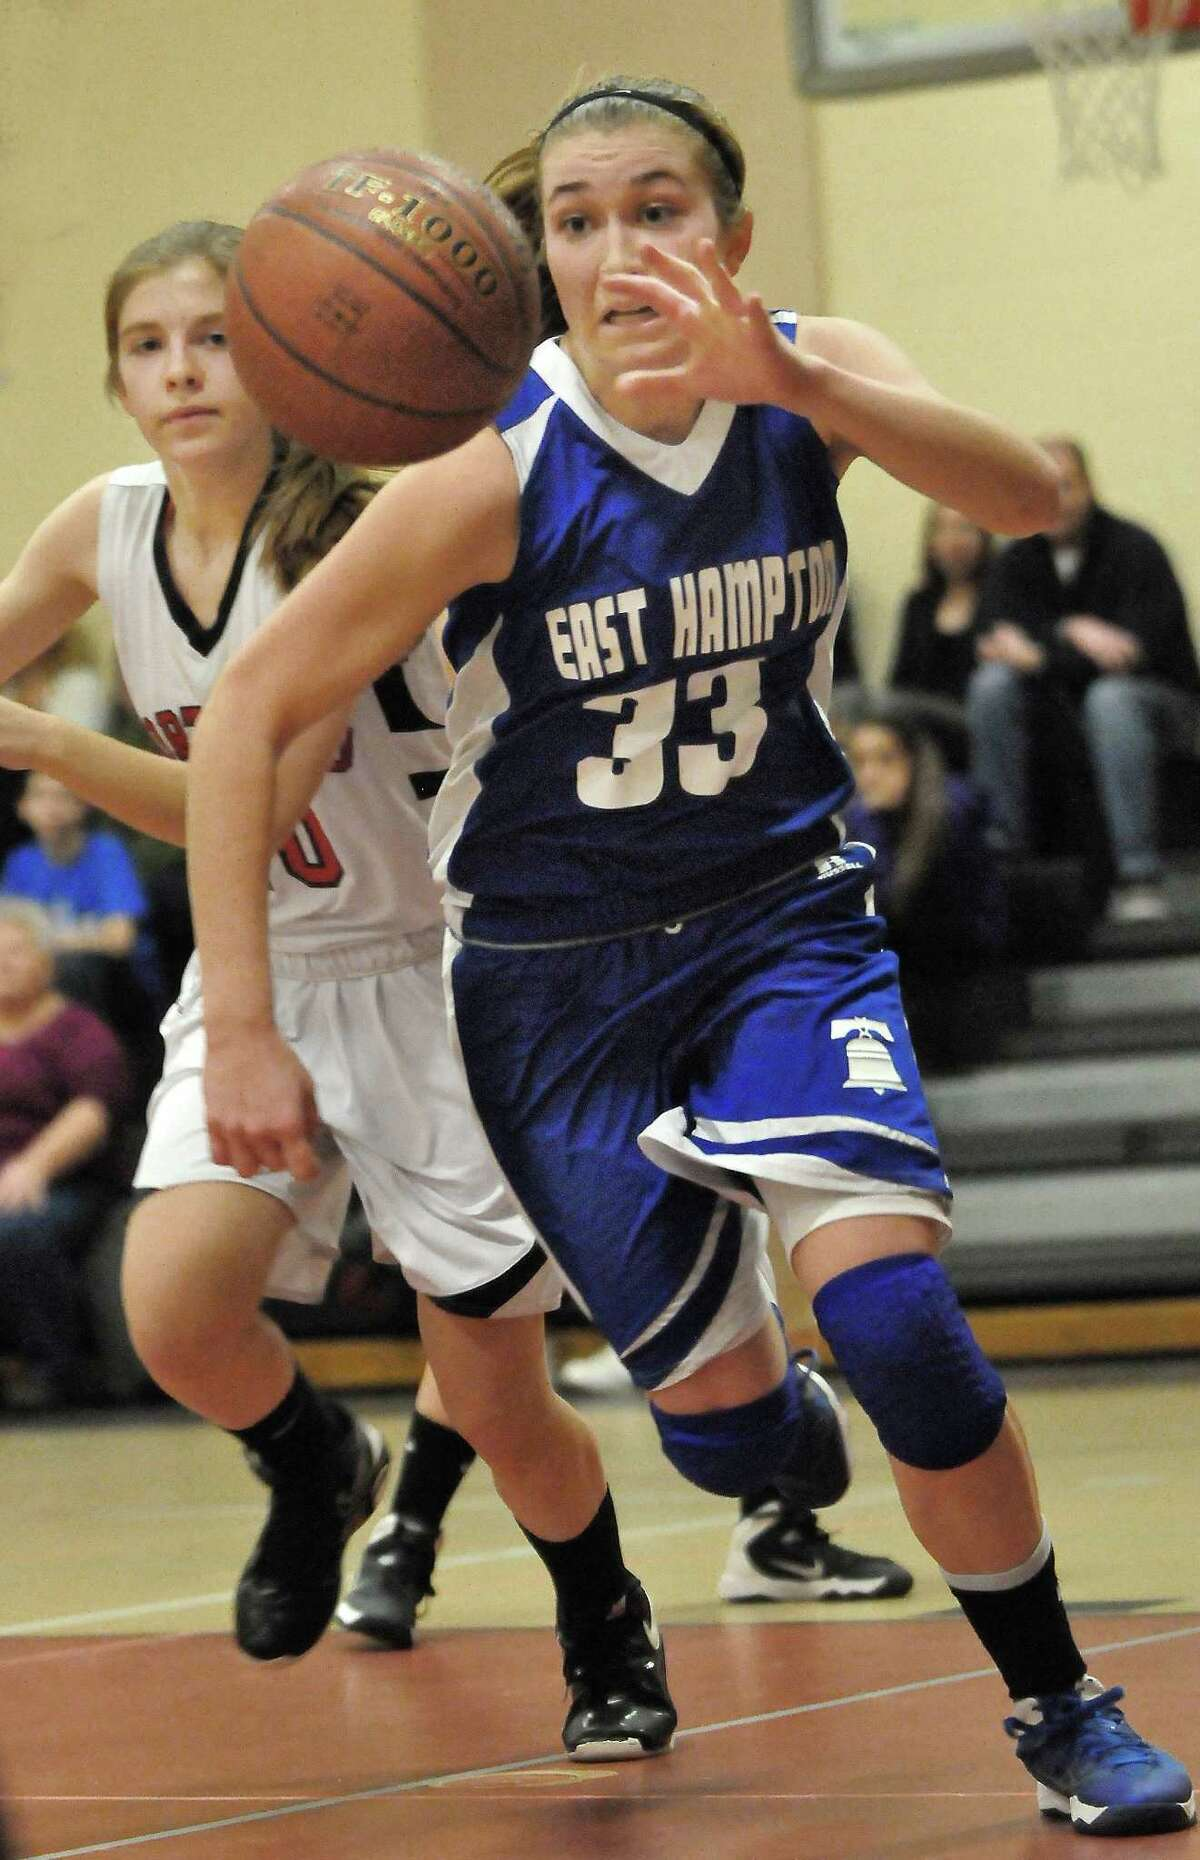 Catherine Avalone - The Middletown Press East Hampton sophomore Meghan Orbann grabs a rebound and drives the baseline past Portland's Courtney Cote Tuesday evening in Portland. The East Hampton Bellringers defeated the Portland Panthers 43 - 34.